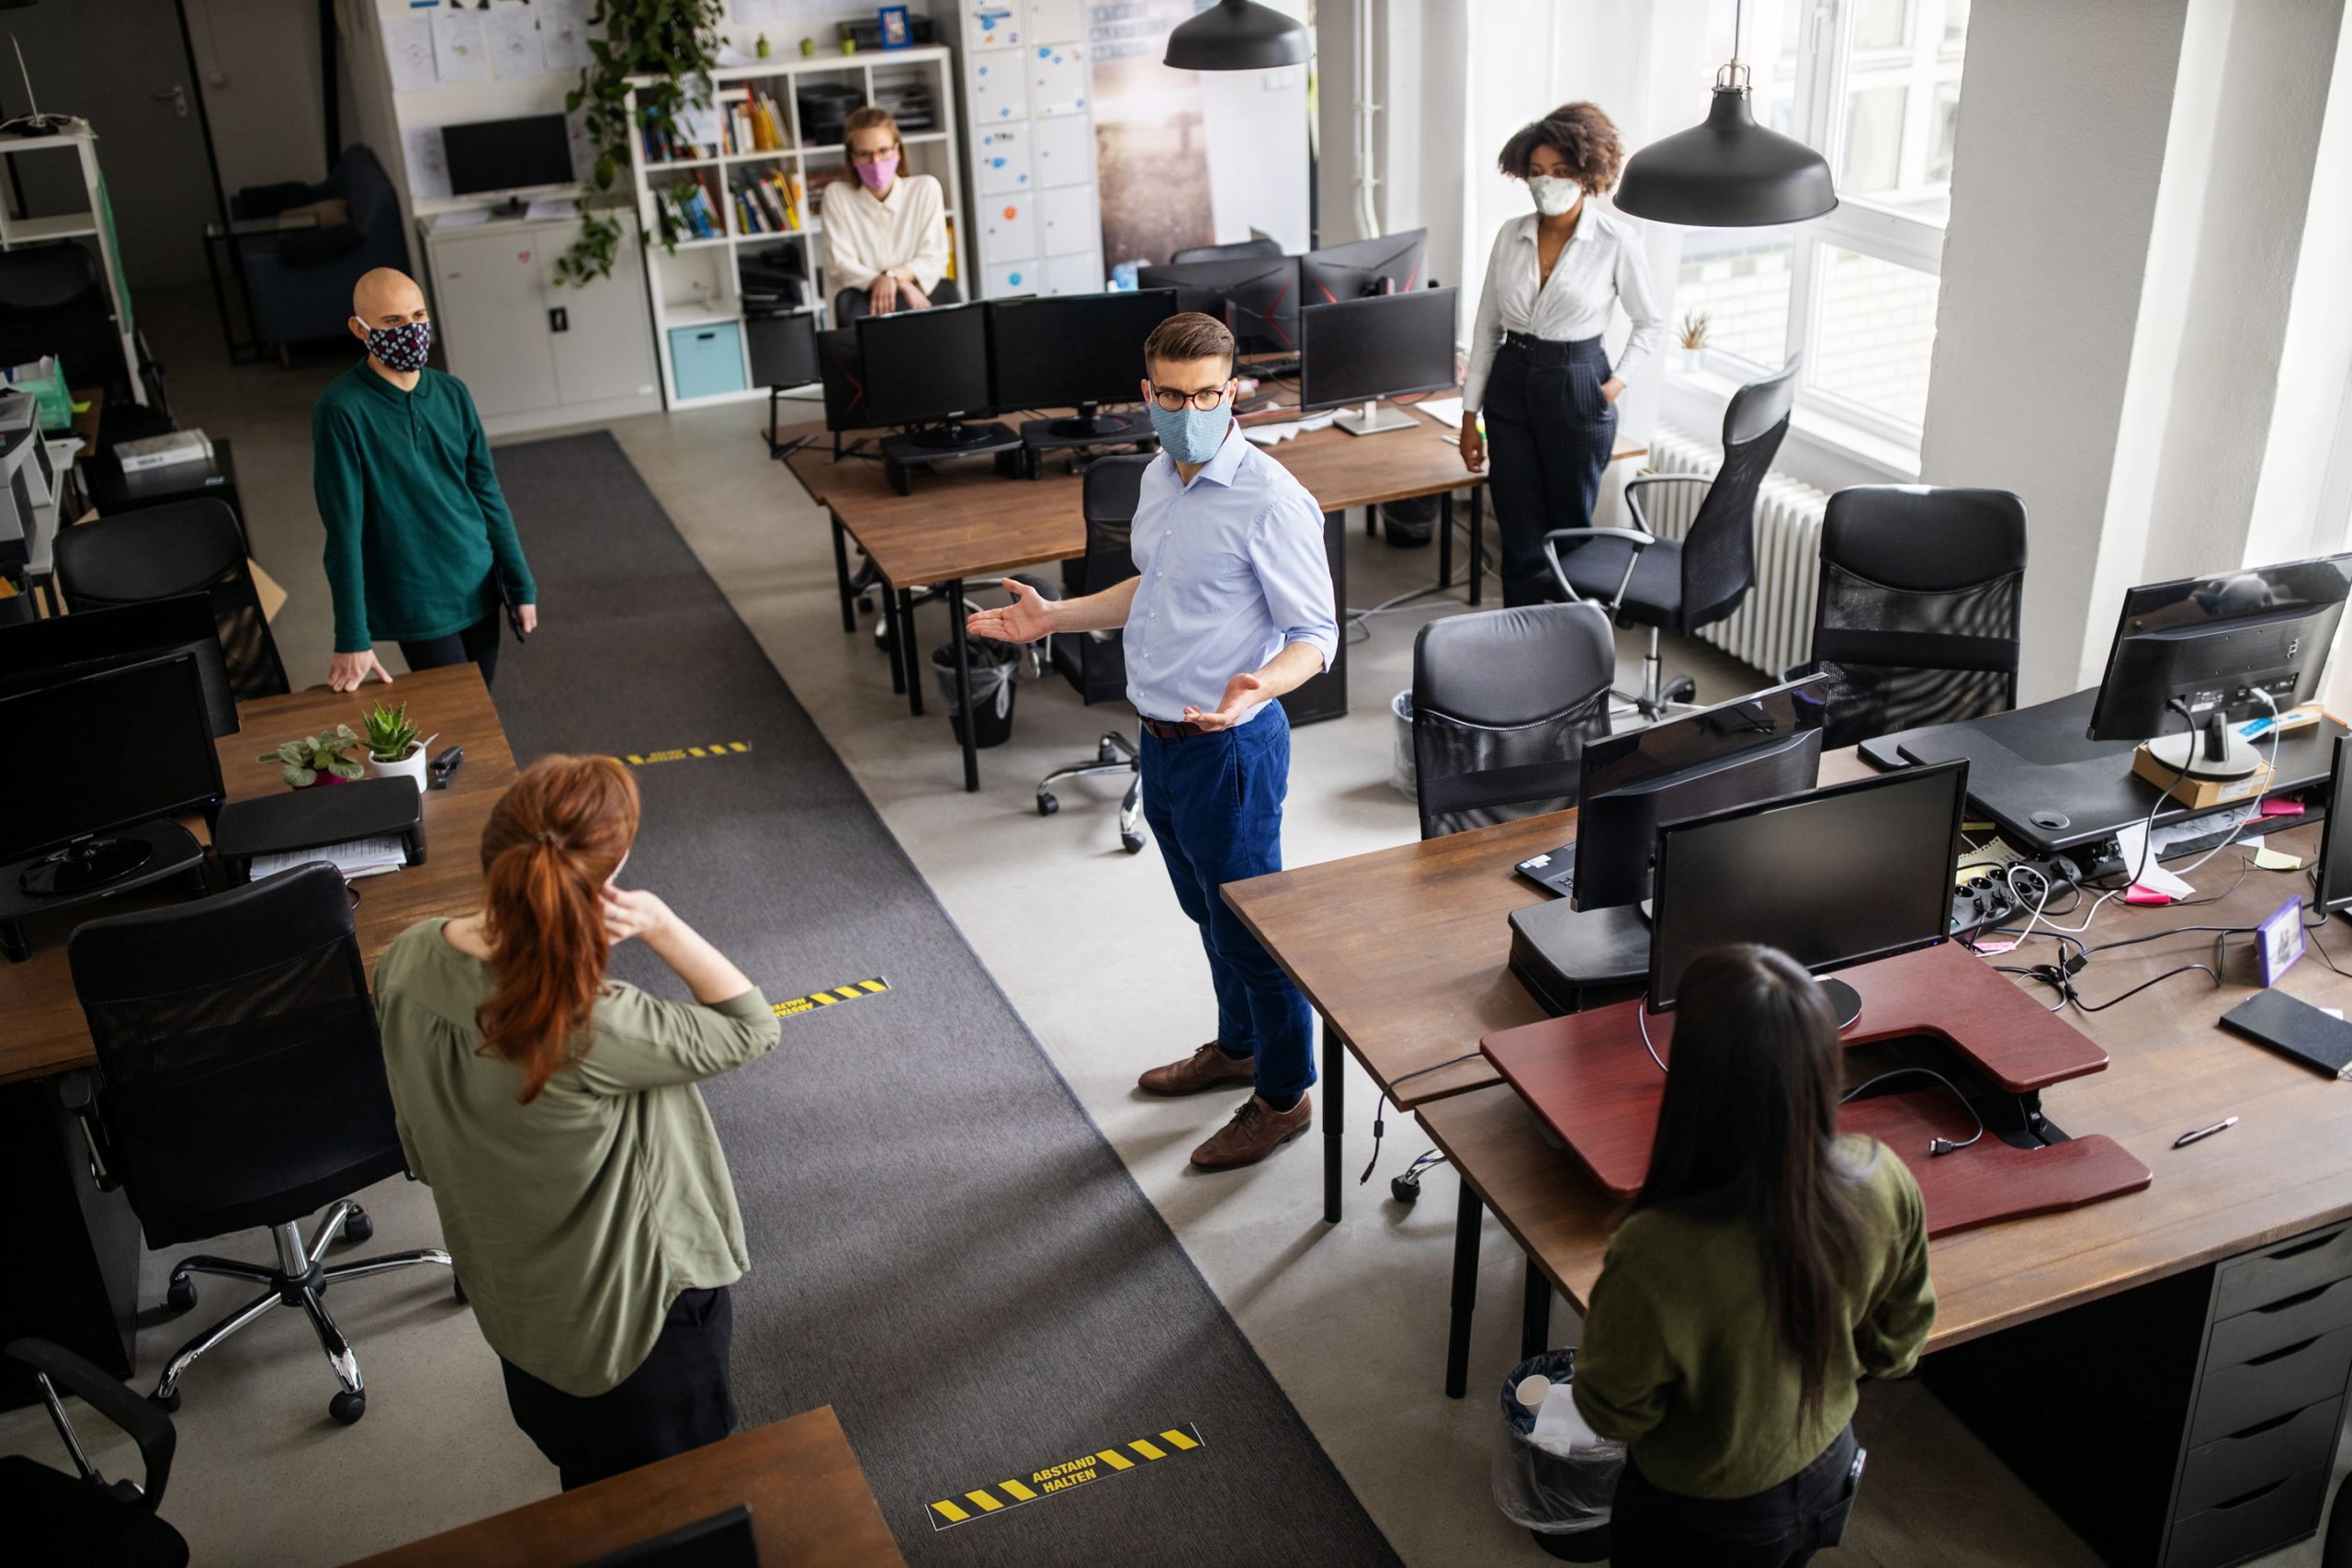 3 Tips for Managing the Return to In-Person Workplaces